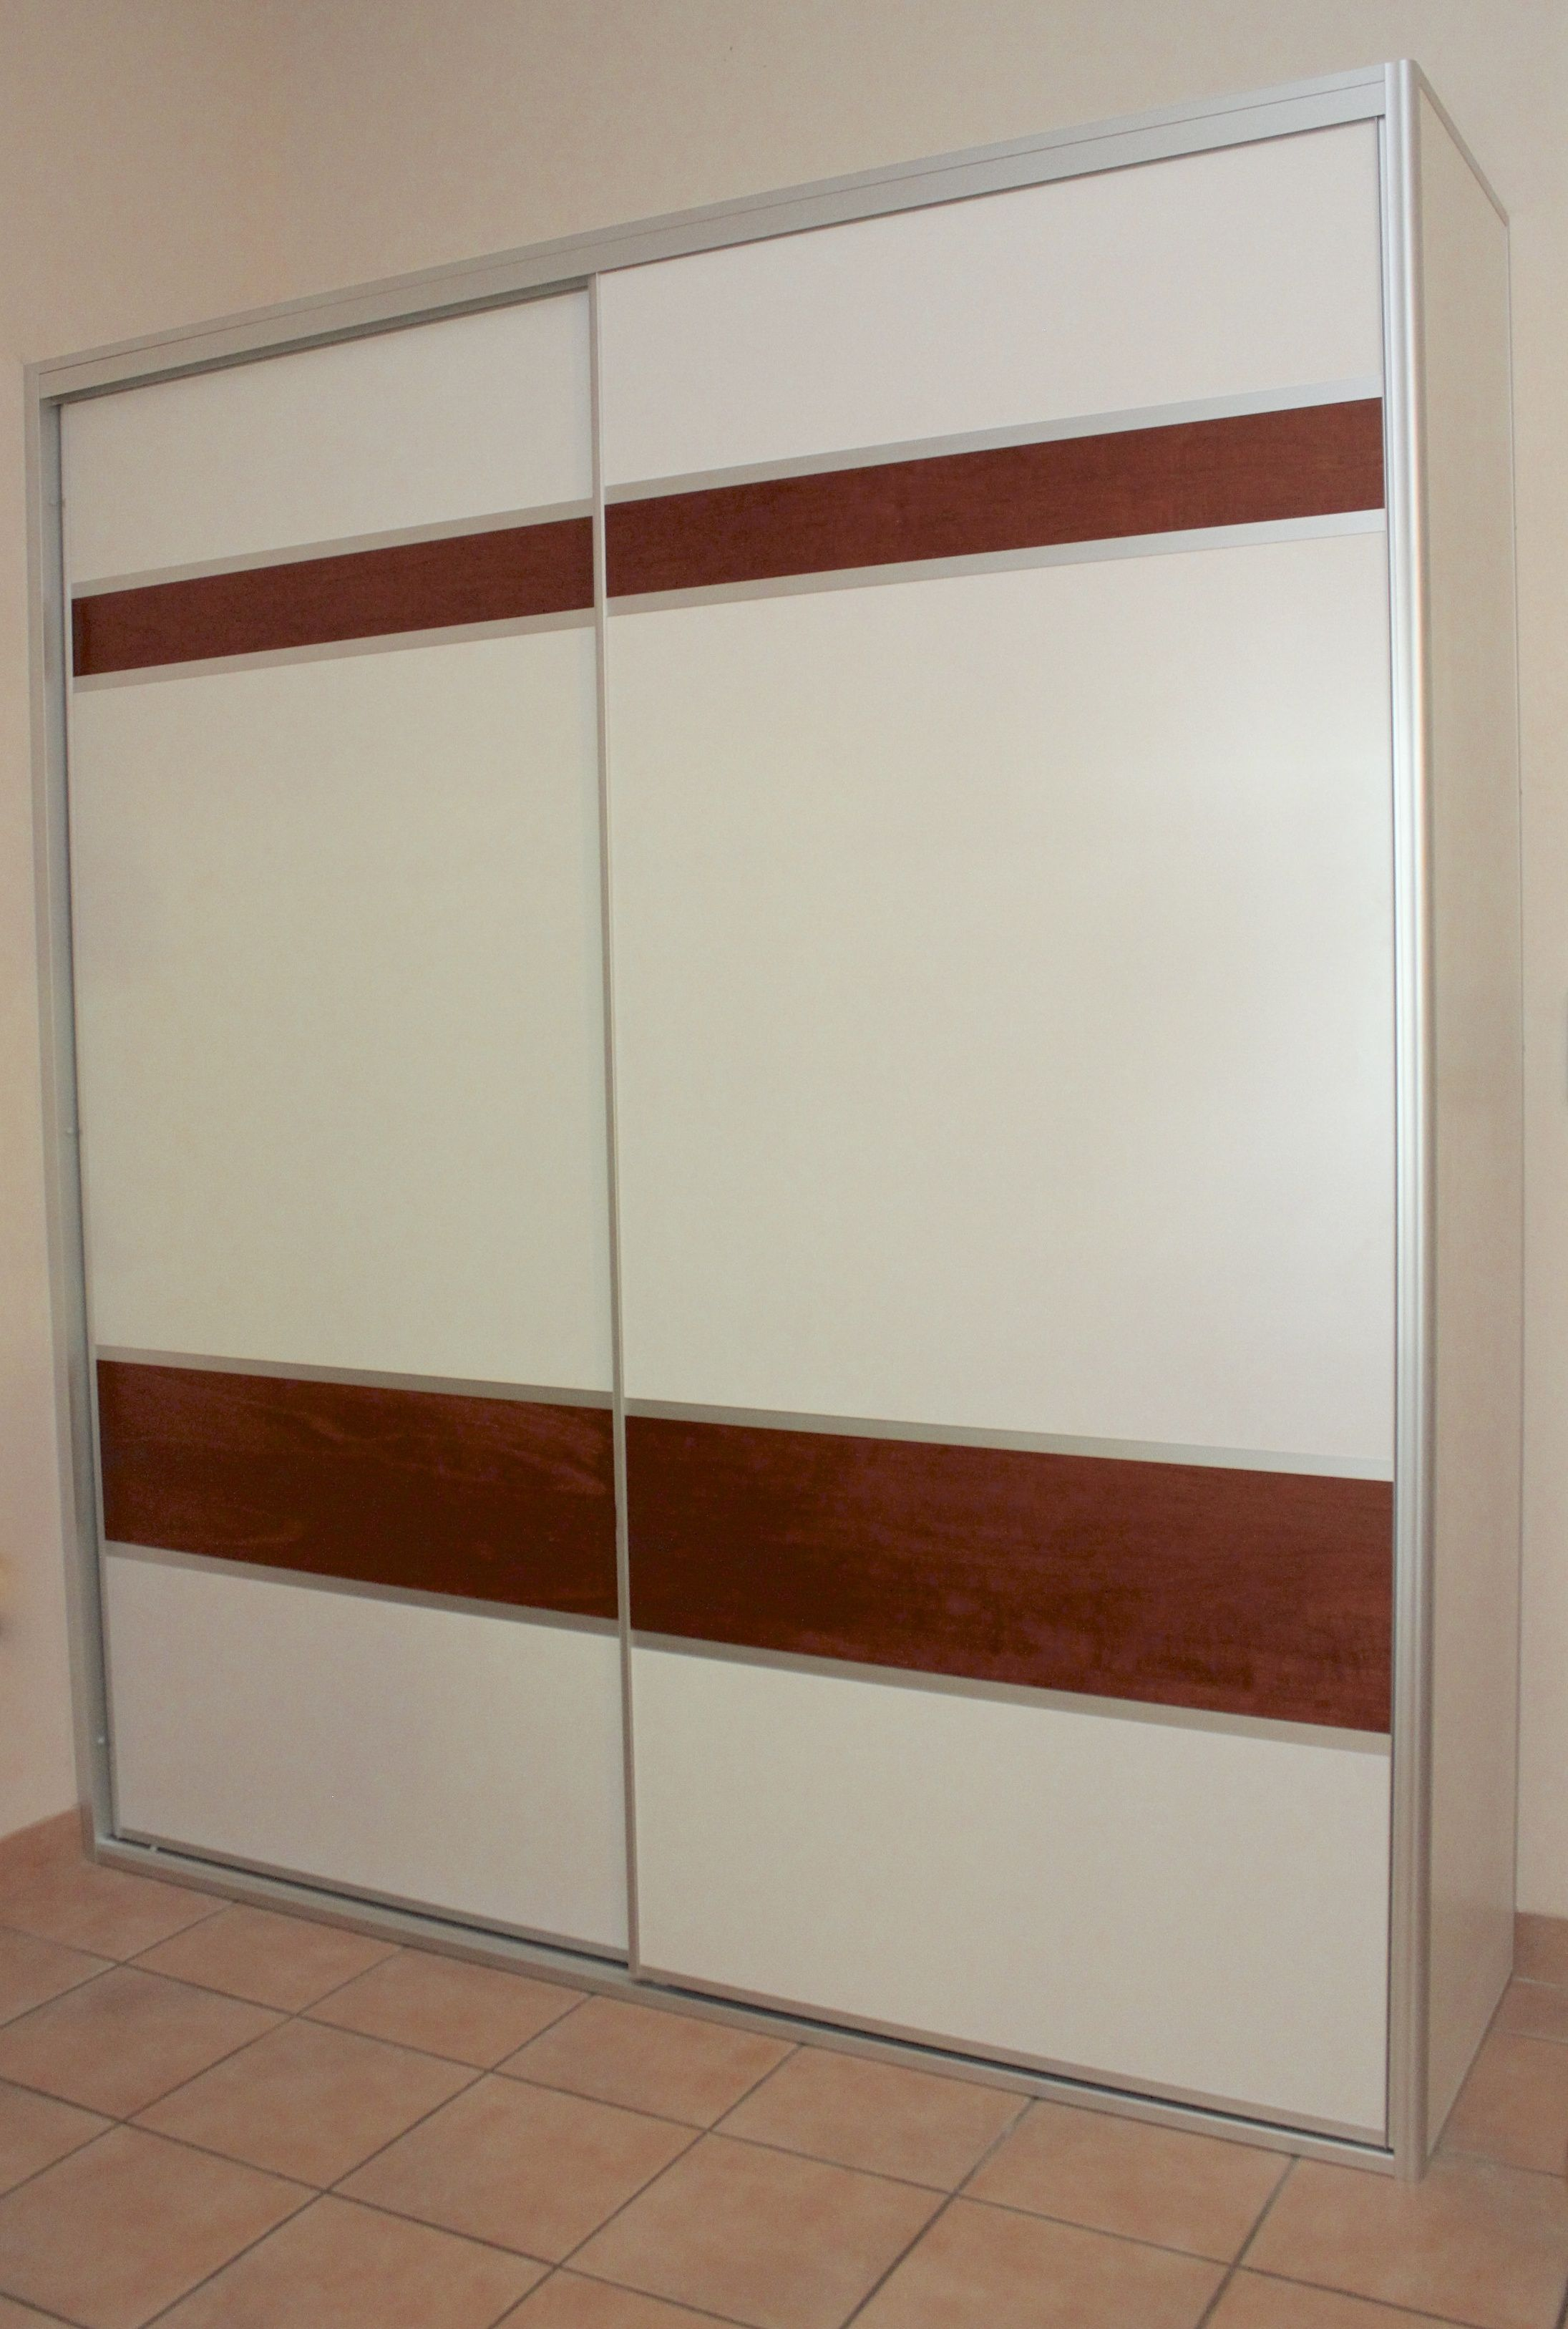 Sliding Wardrobe Doors From Our Quot Mode Range Quot White